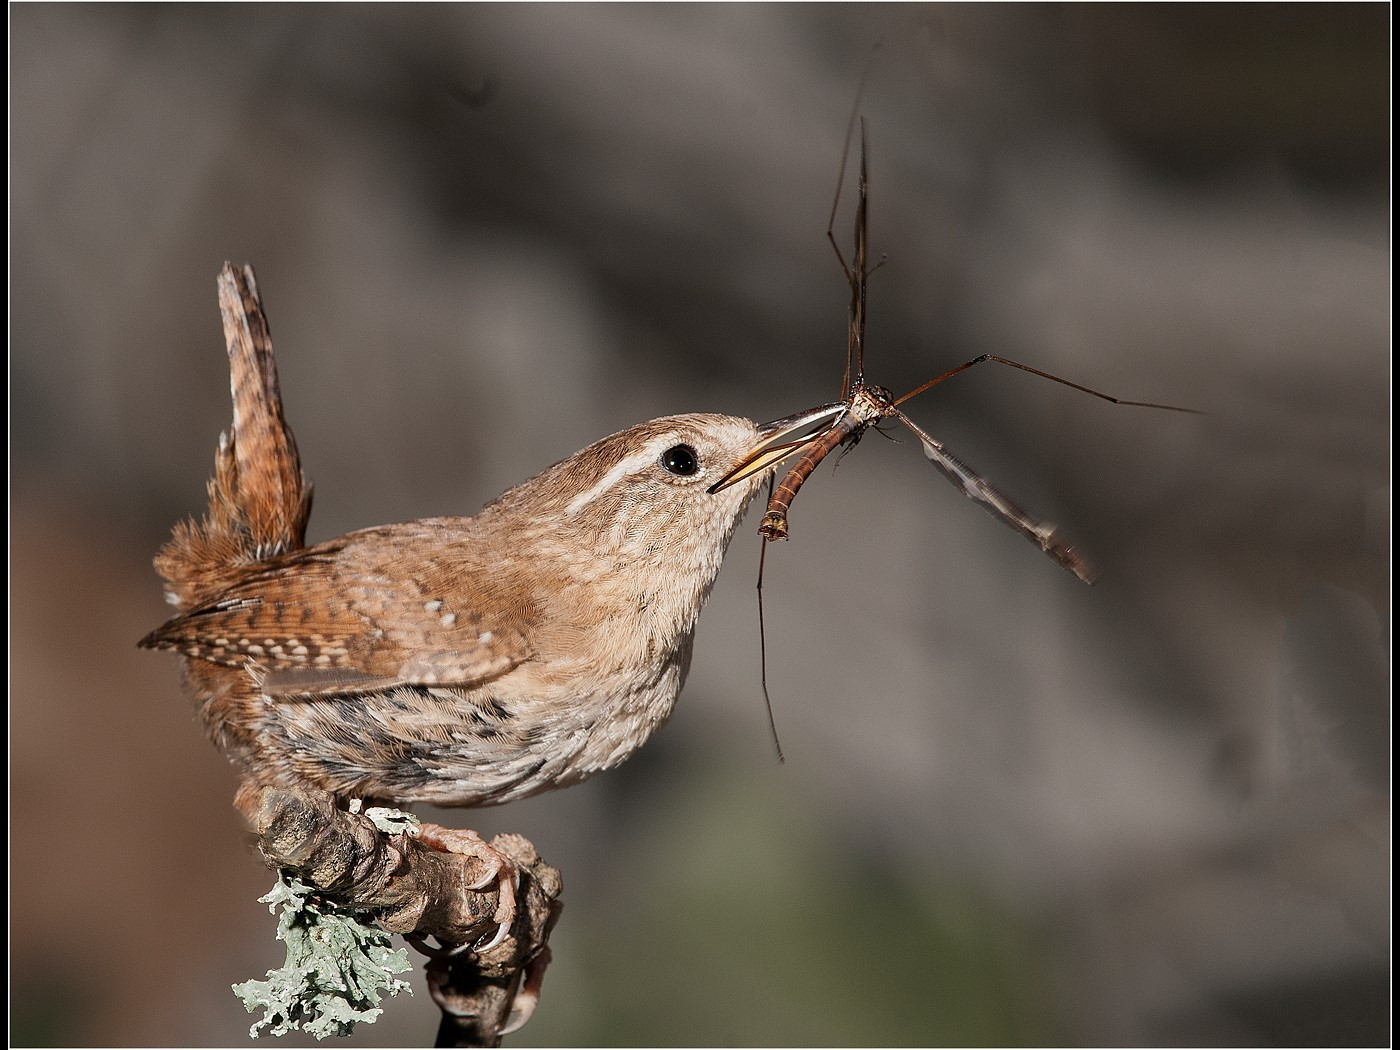 Wren and Crane Fly